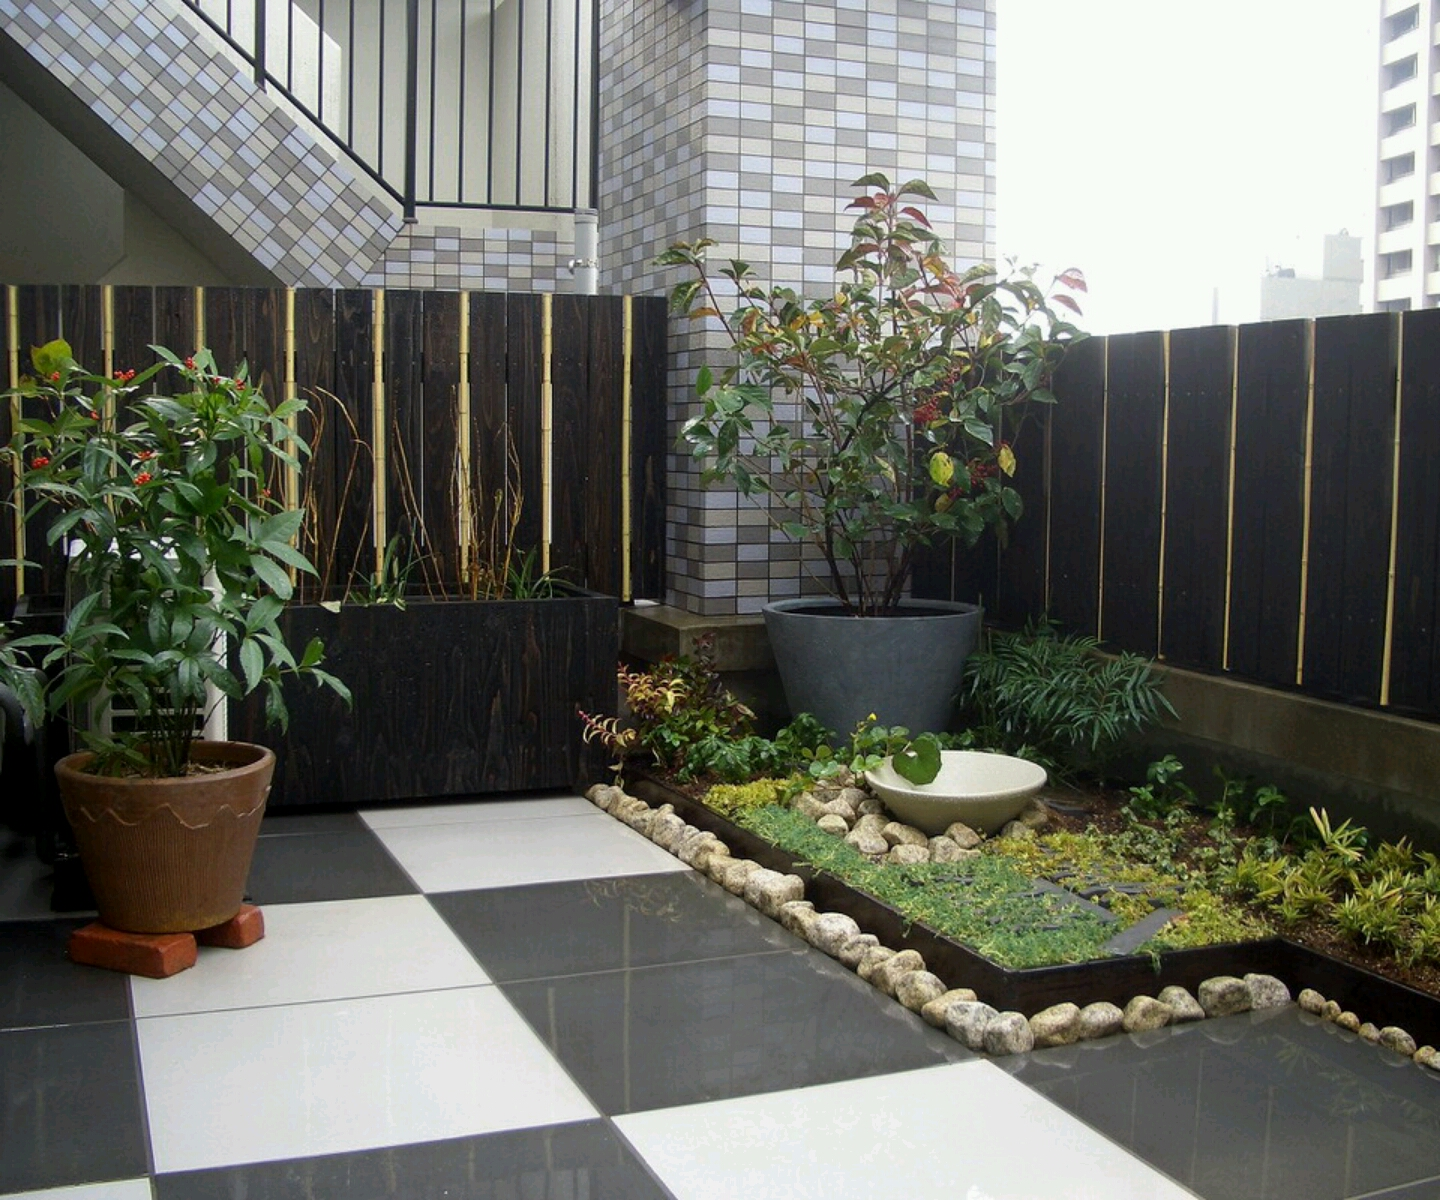 Ultra modern garden design inspiration interior designs for New house garden ideas